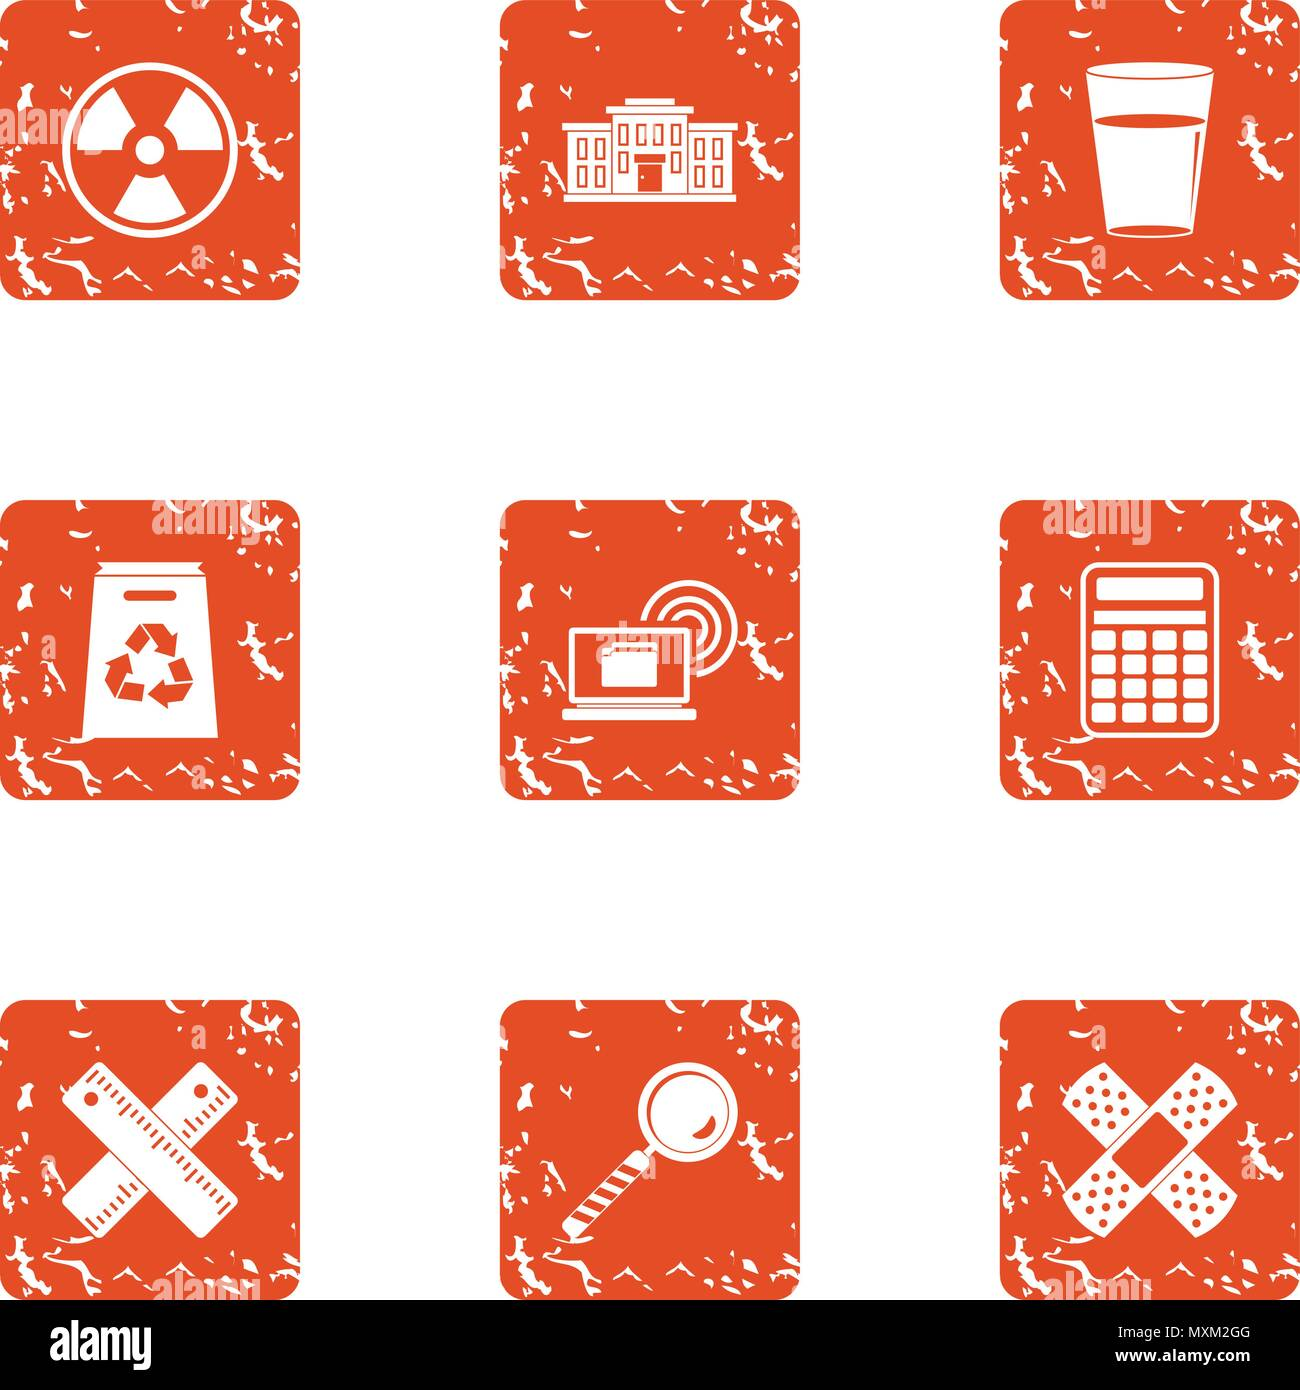 Polymer icons set, grunge style - Stock Vector